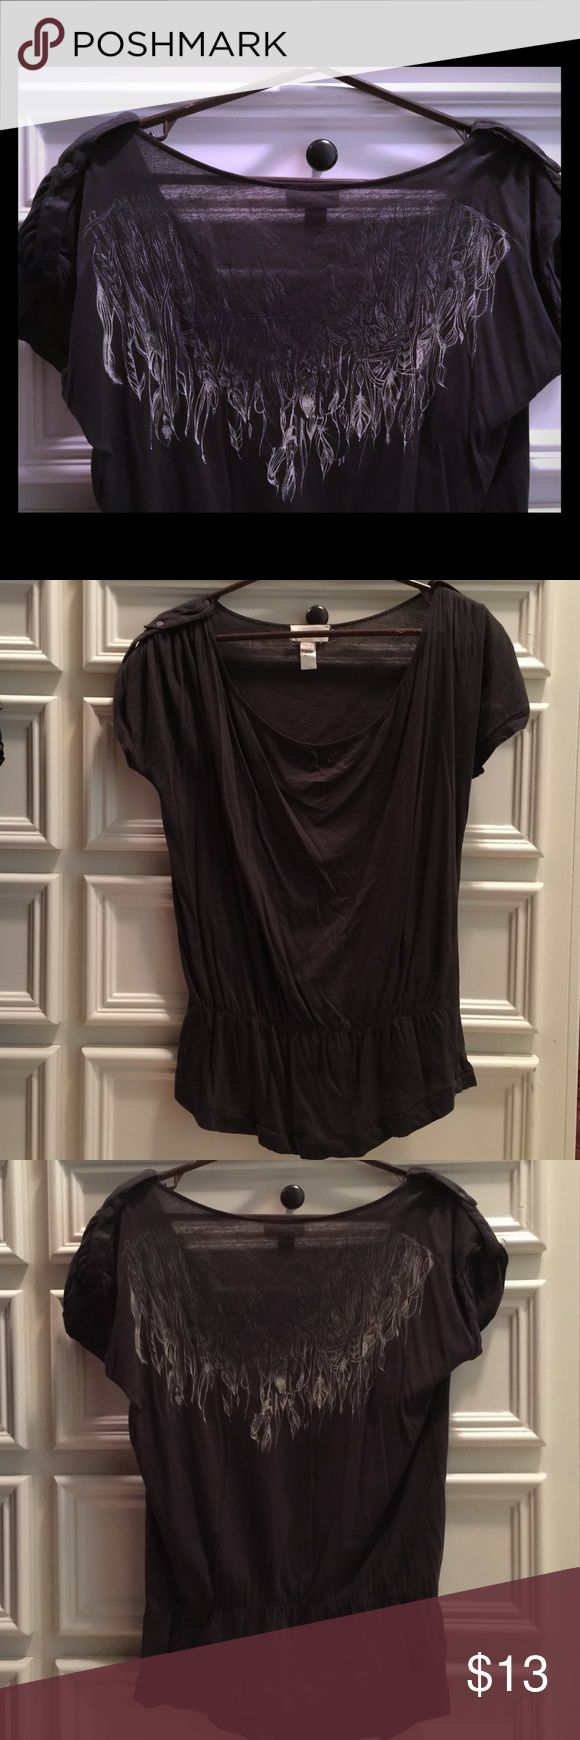 ⬇️SALE!⬇️ Diesel gray top w/graphic on back L Charcoal gray Diesel top with military shoulders and gathered low waist. Reverse high low hemline. Solid front and wing graphic on back. Size large. Diesel Tops